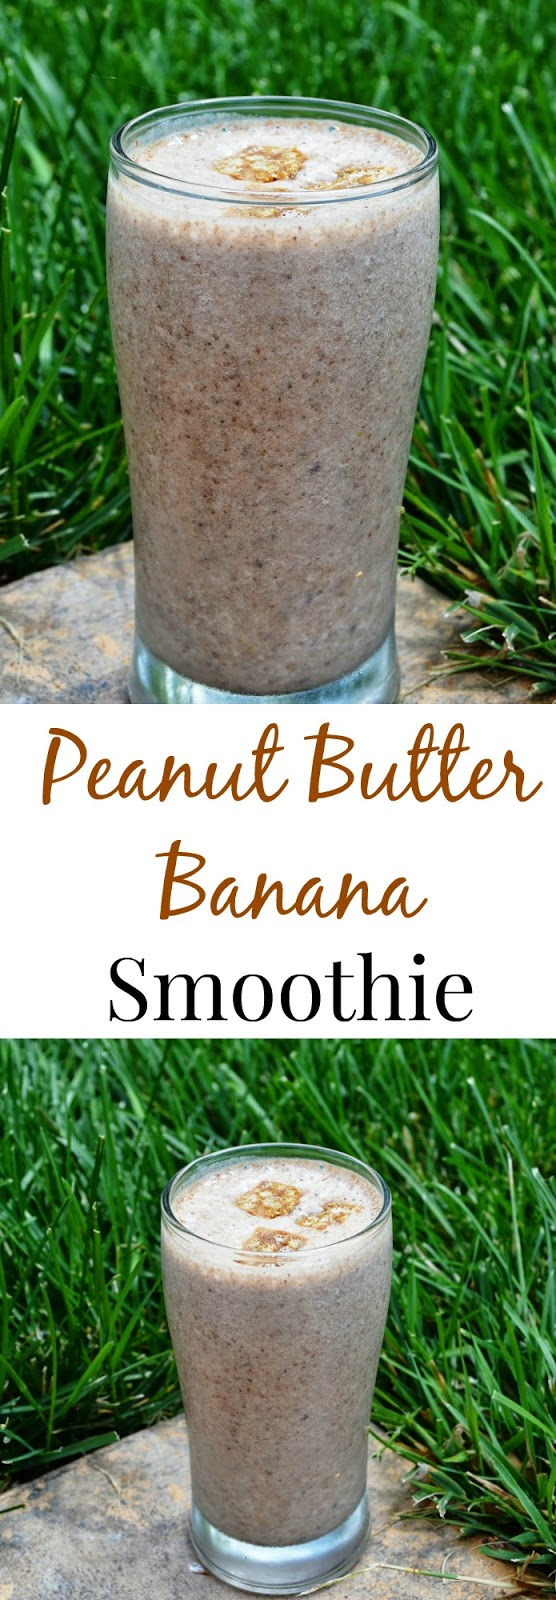 This Peanut Butter Banana Smoothie is so simple with only 3 ingredients. It is filling and tastes like dessert but is actually quite healthy! www.nutritionistreviews.com